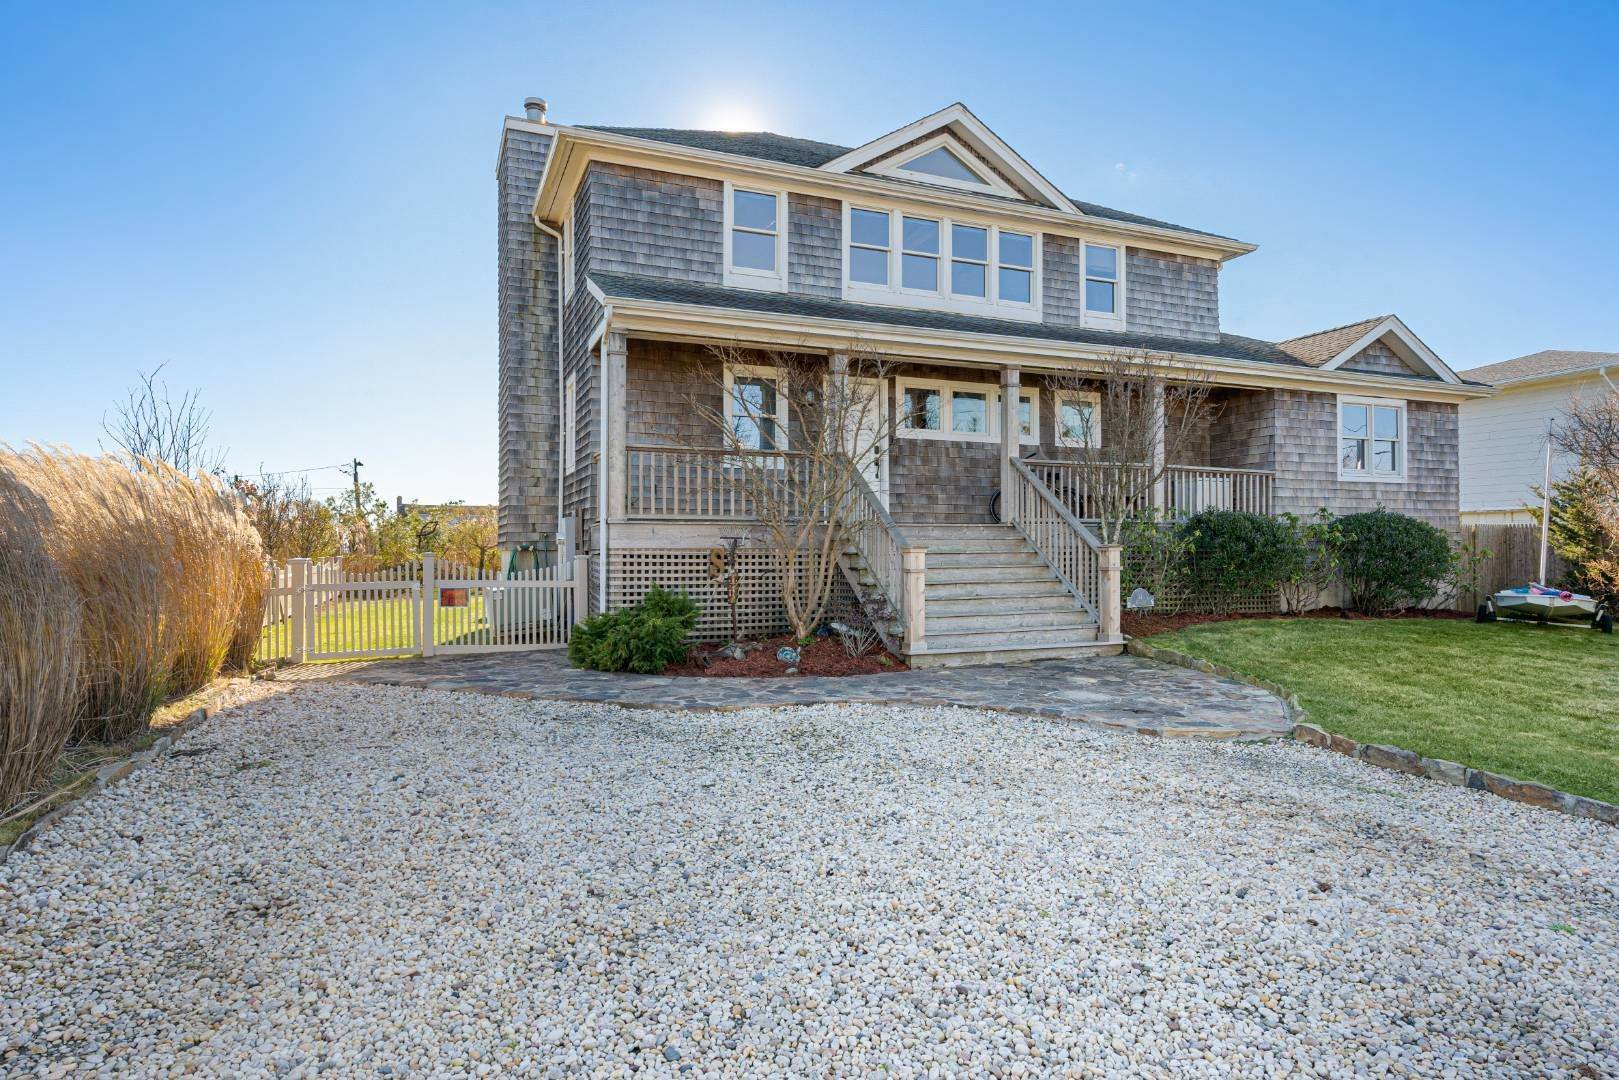 Single Family Home for Sale at Boaters Delight, Remsenburg Waterfront 11 Bayview Road, Remsenburg, NY 11960